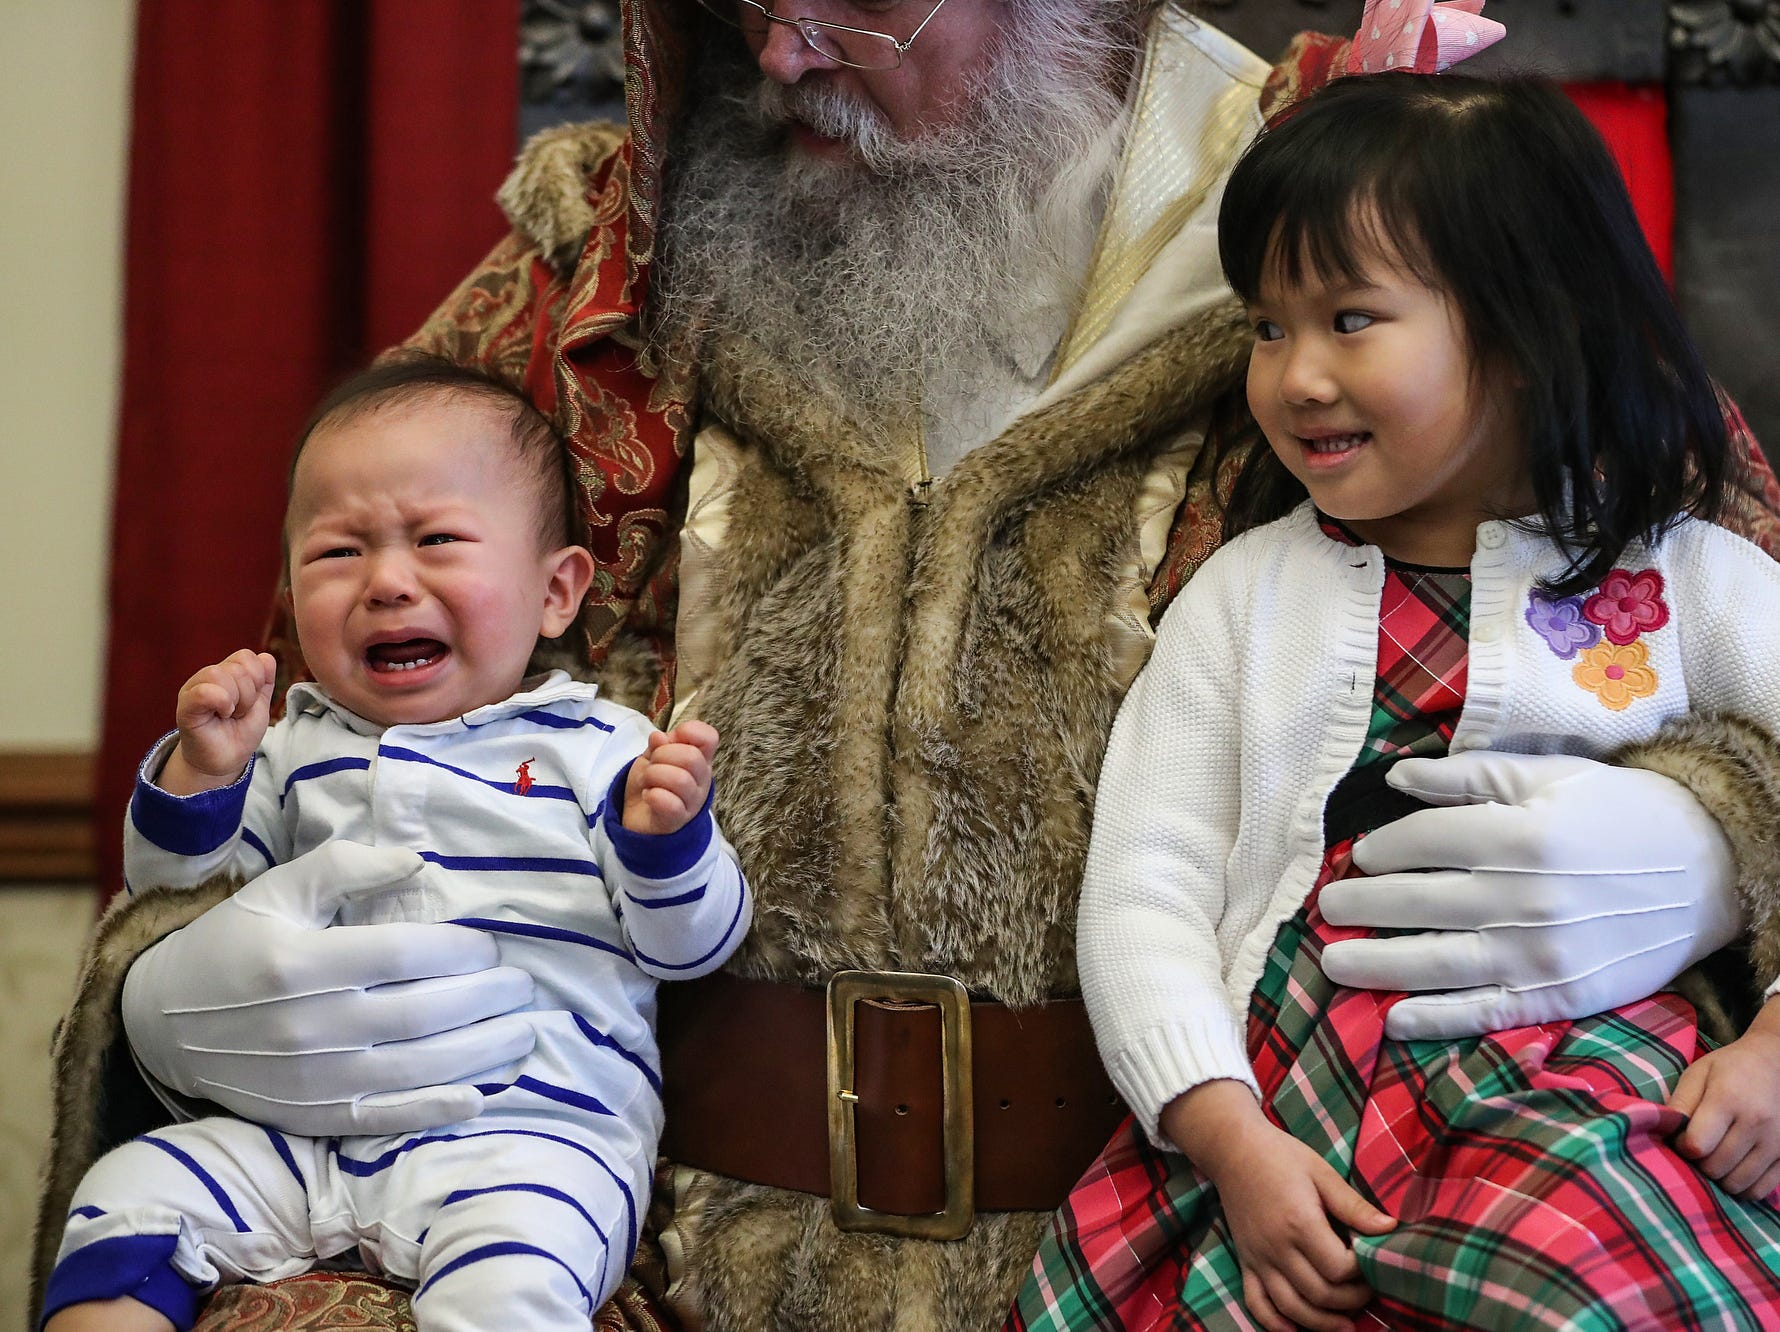 From left, Andrew Ho, 1, cries on Santa's lap while his sister Catherine Ho, 5, looks on, during a Victorian Christmas open house at the James Whitcomb Riley museum home and Billie Lou Wood visitor center in Indianapolis, Saturday, Dec. 8, 2018.